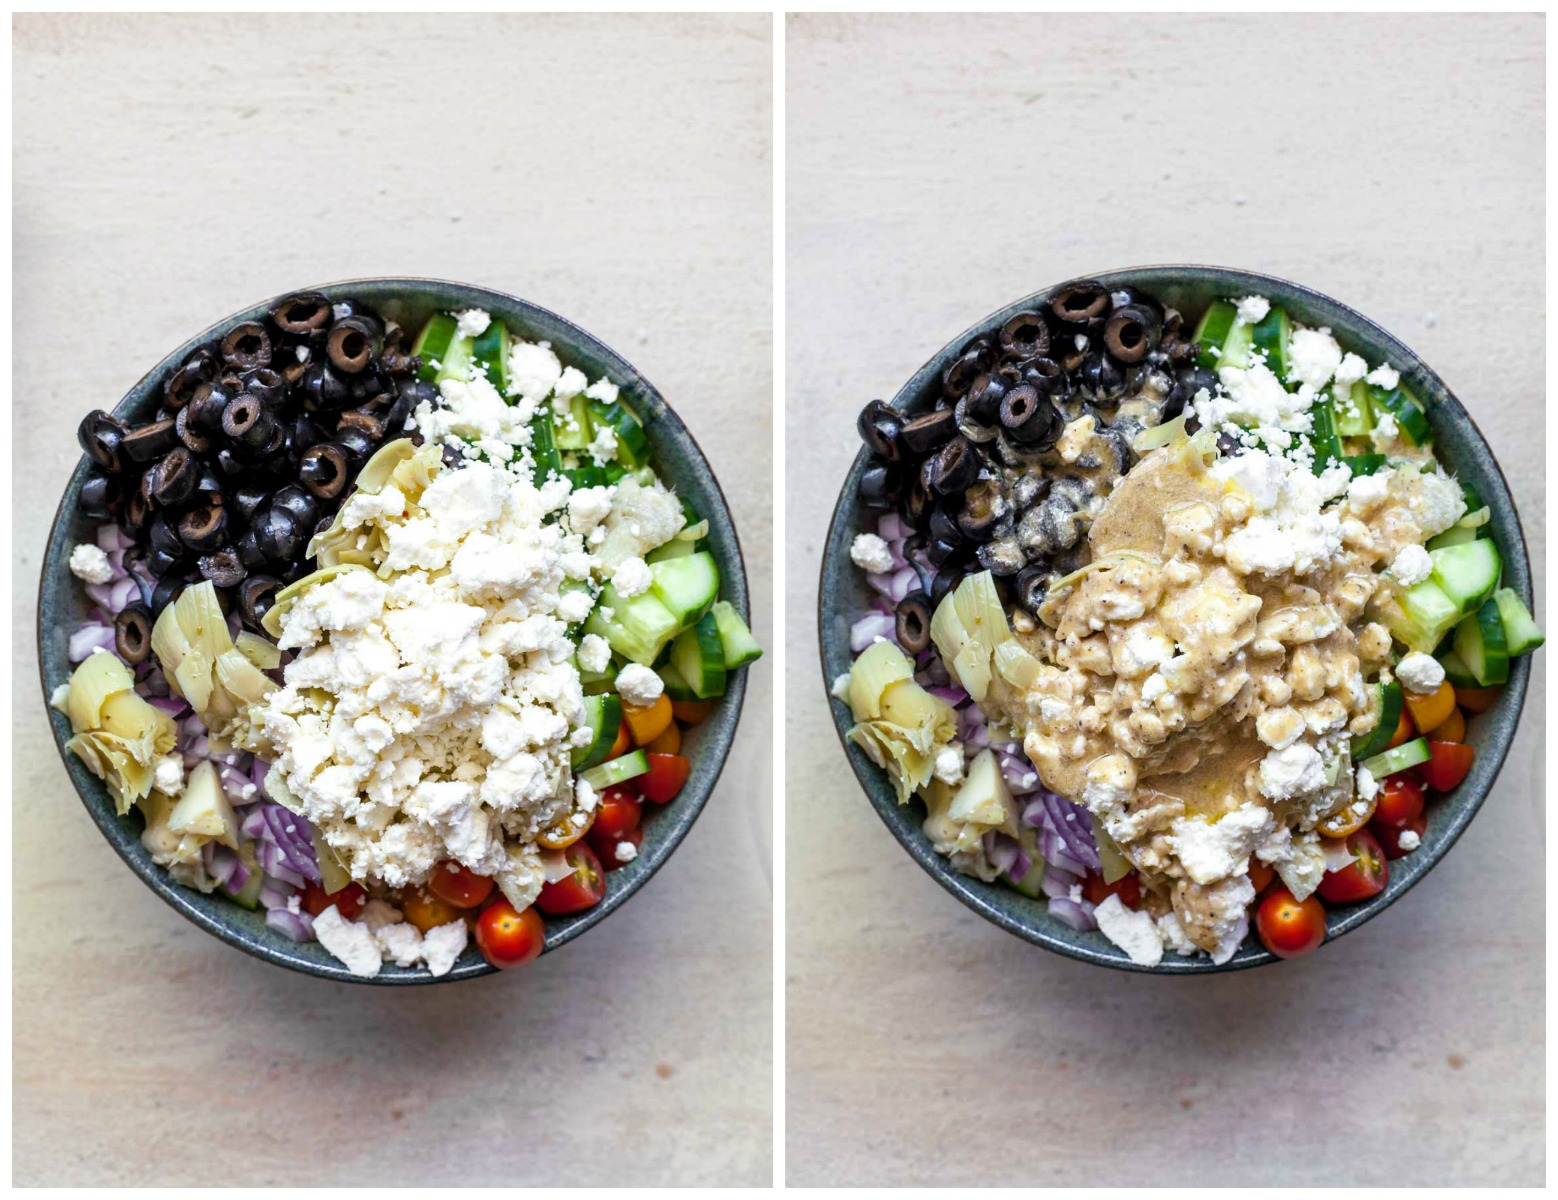 Side-by-side Greek pasta salads showing without dressing vs with dressing